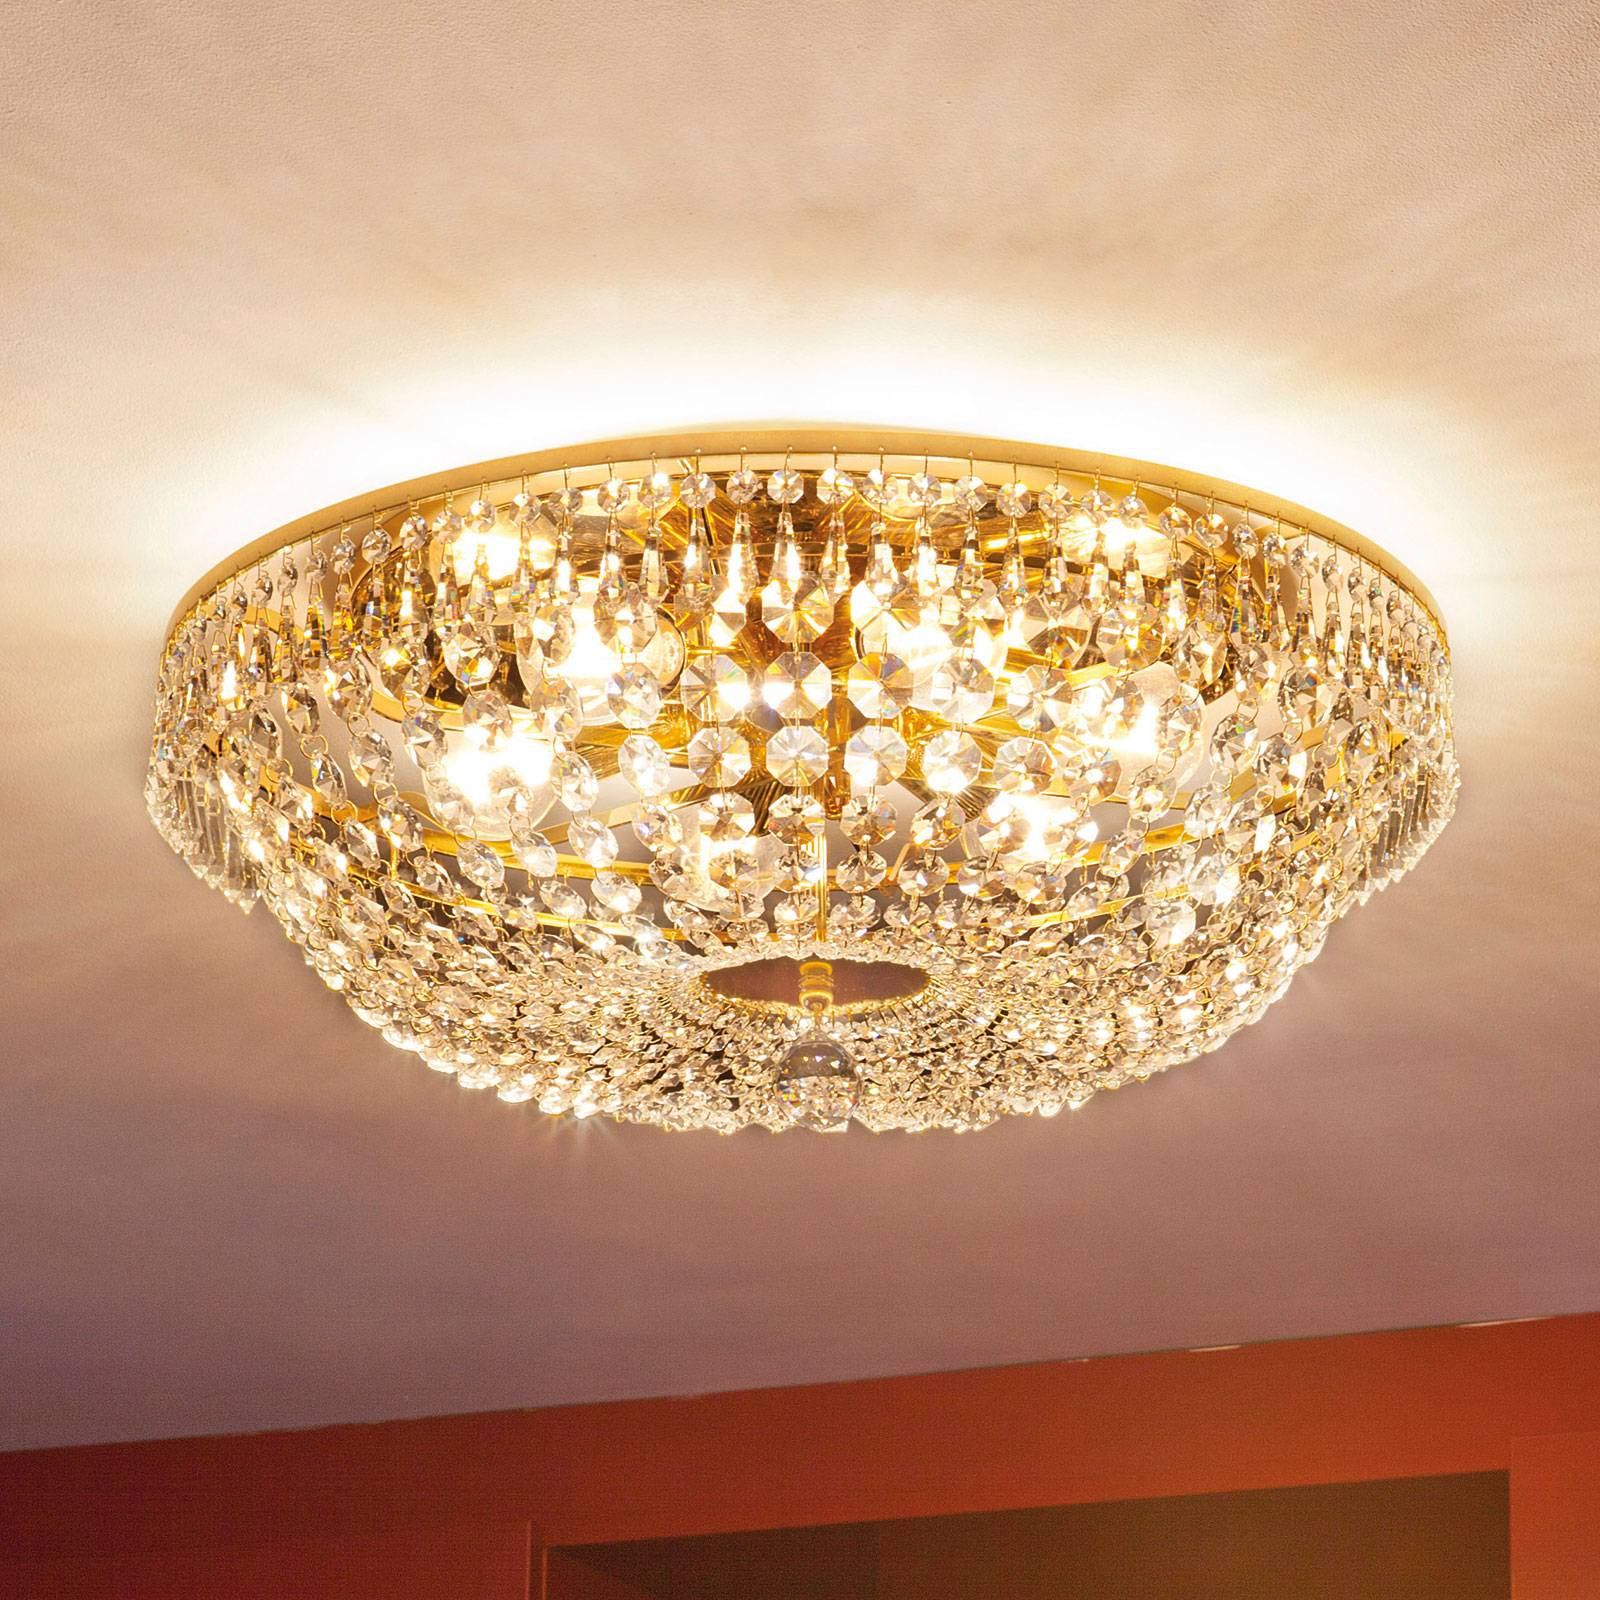 Sherata Crystal Ceiling Light Round Gold 55 cm from Orion